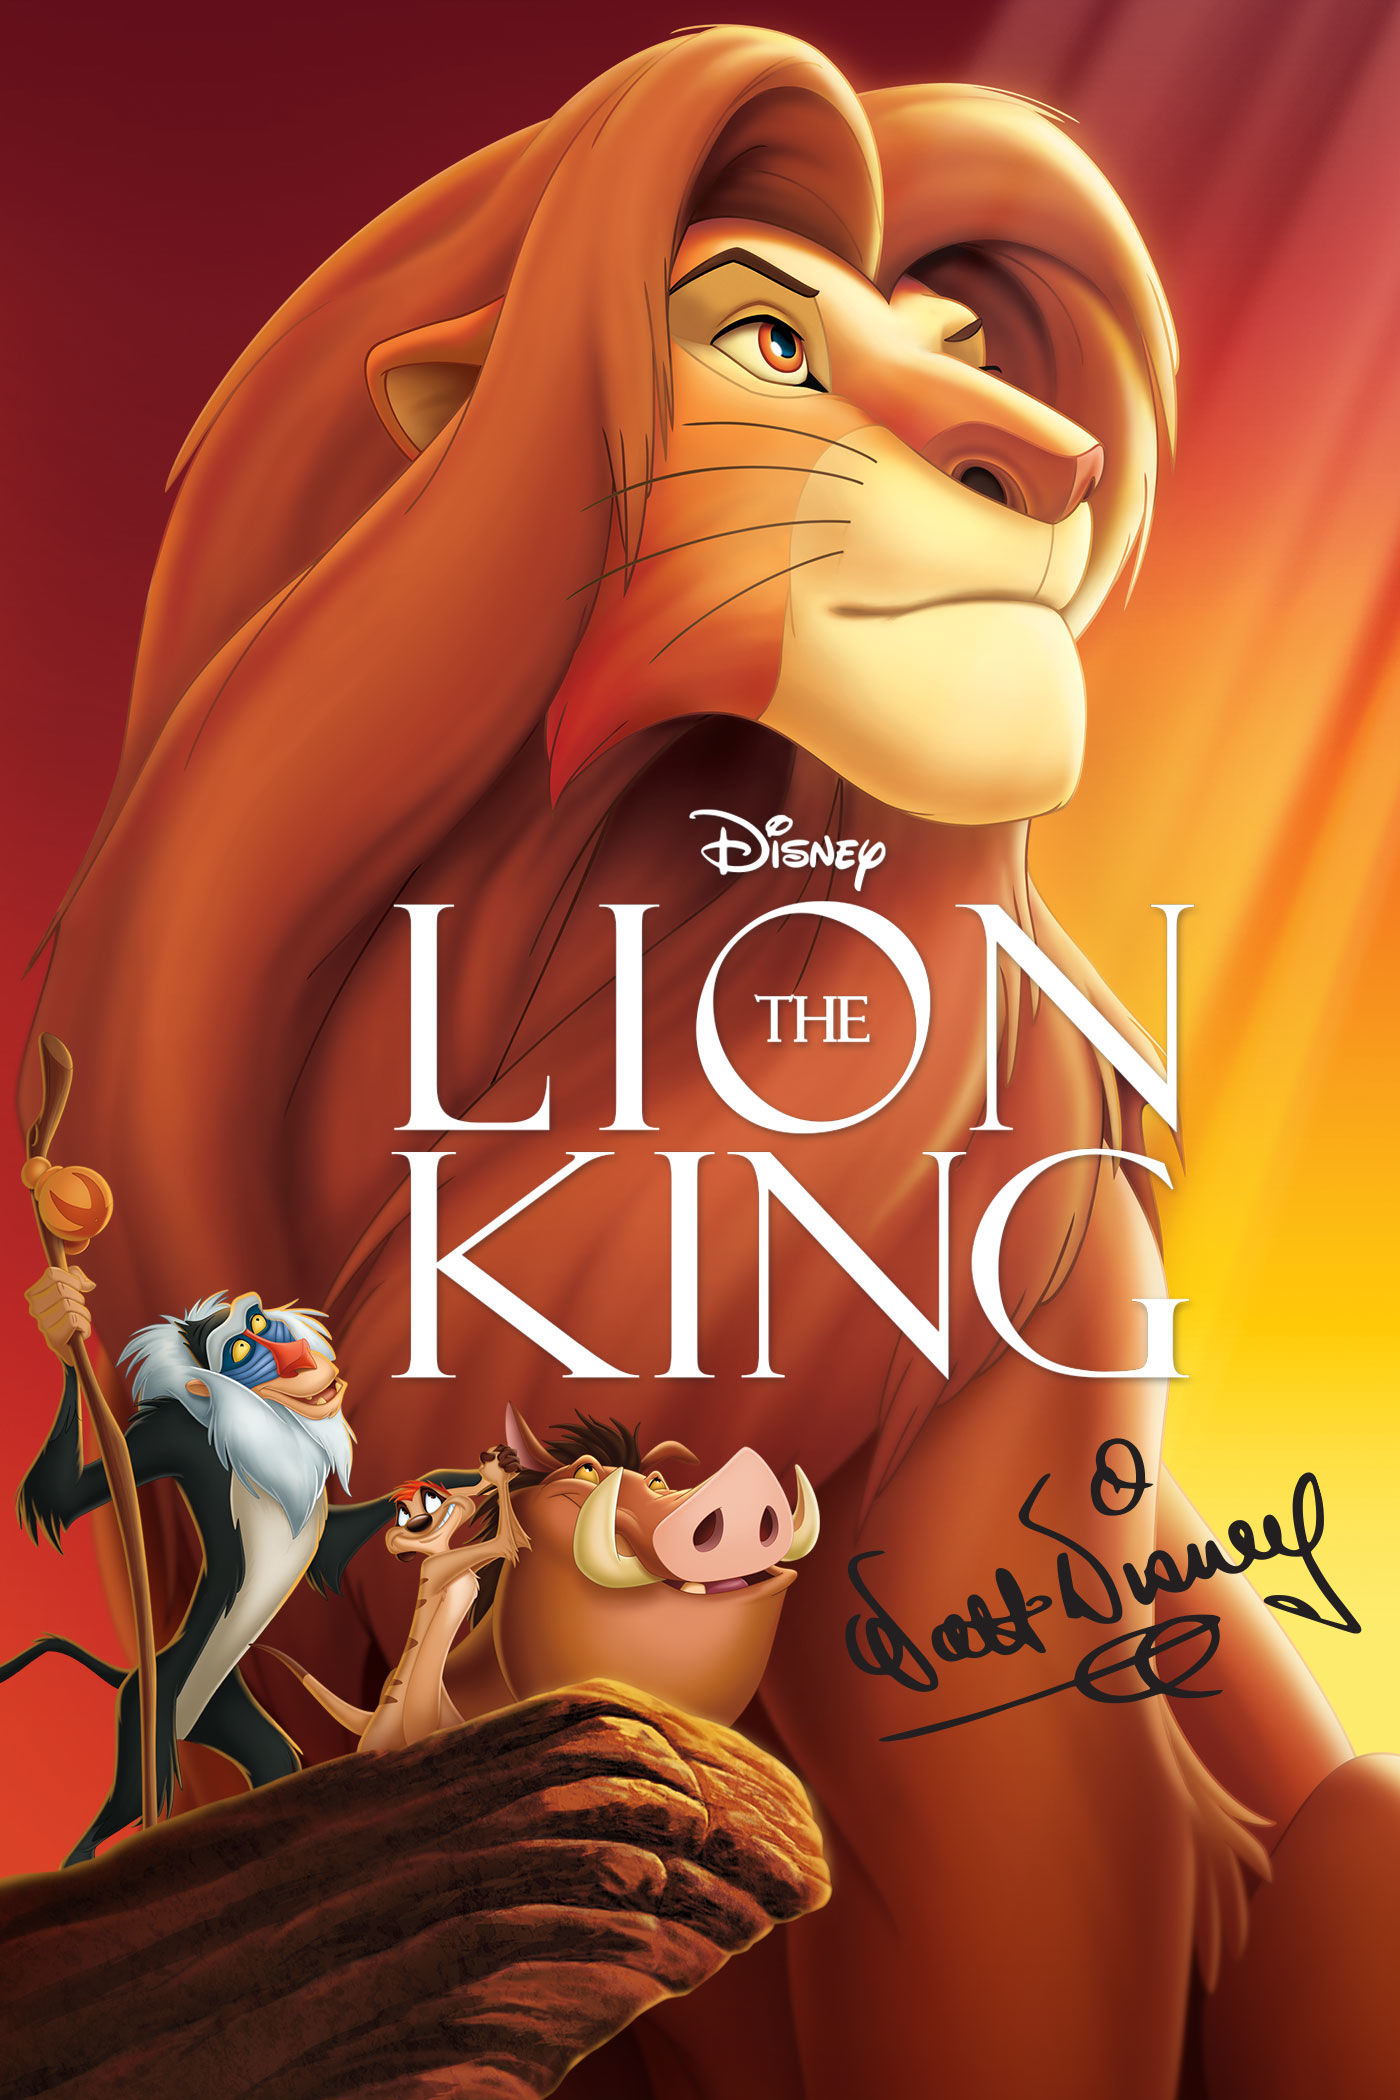 The Lion King, click to find out more